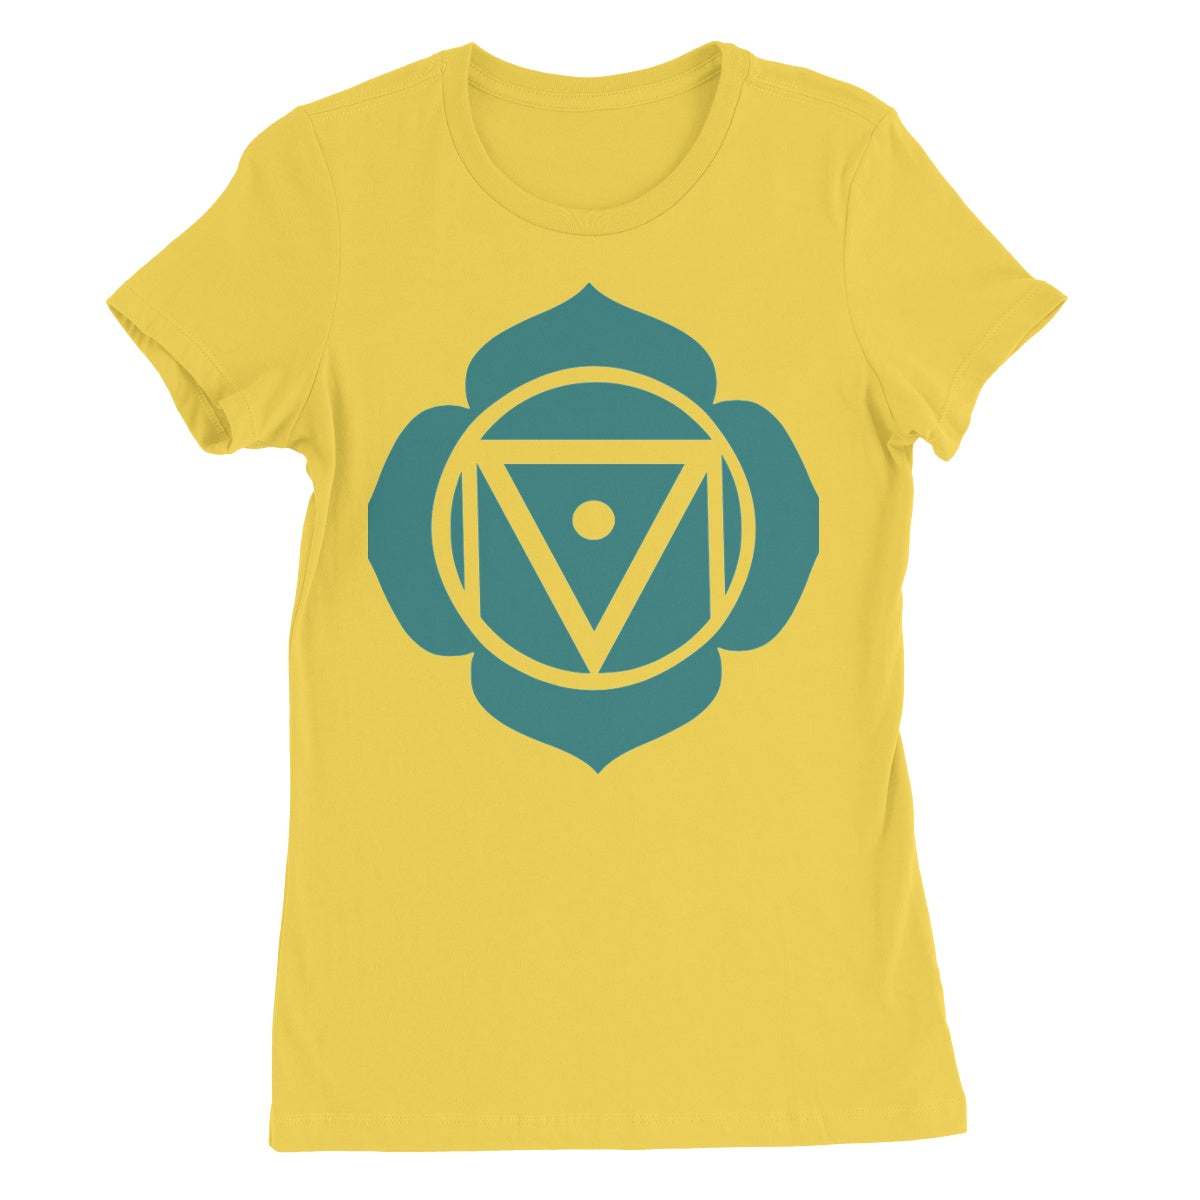 Logo Designs Women's Favourite T-Shirt